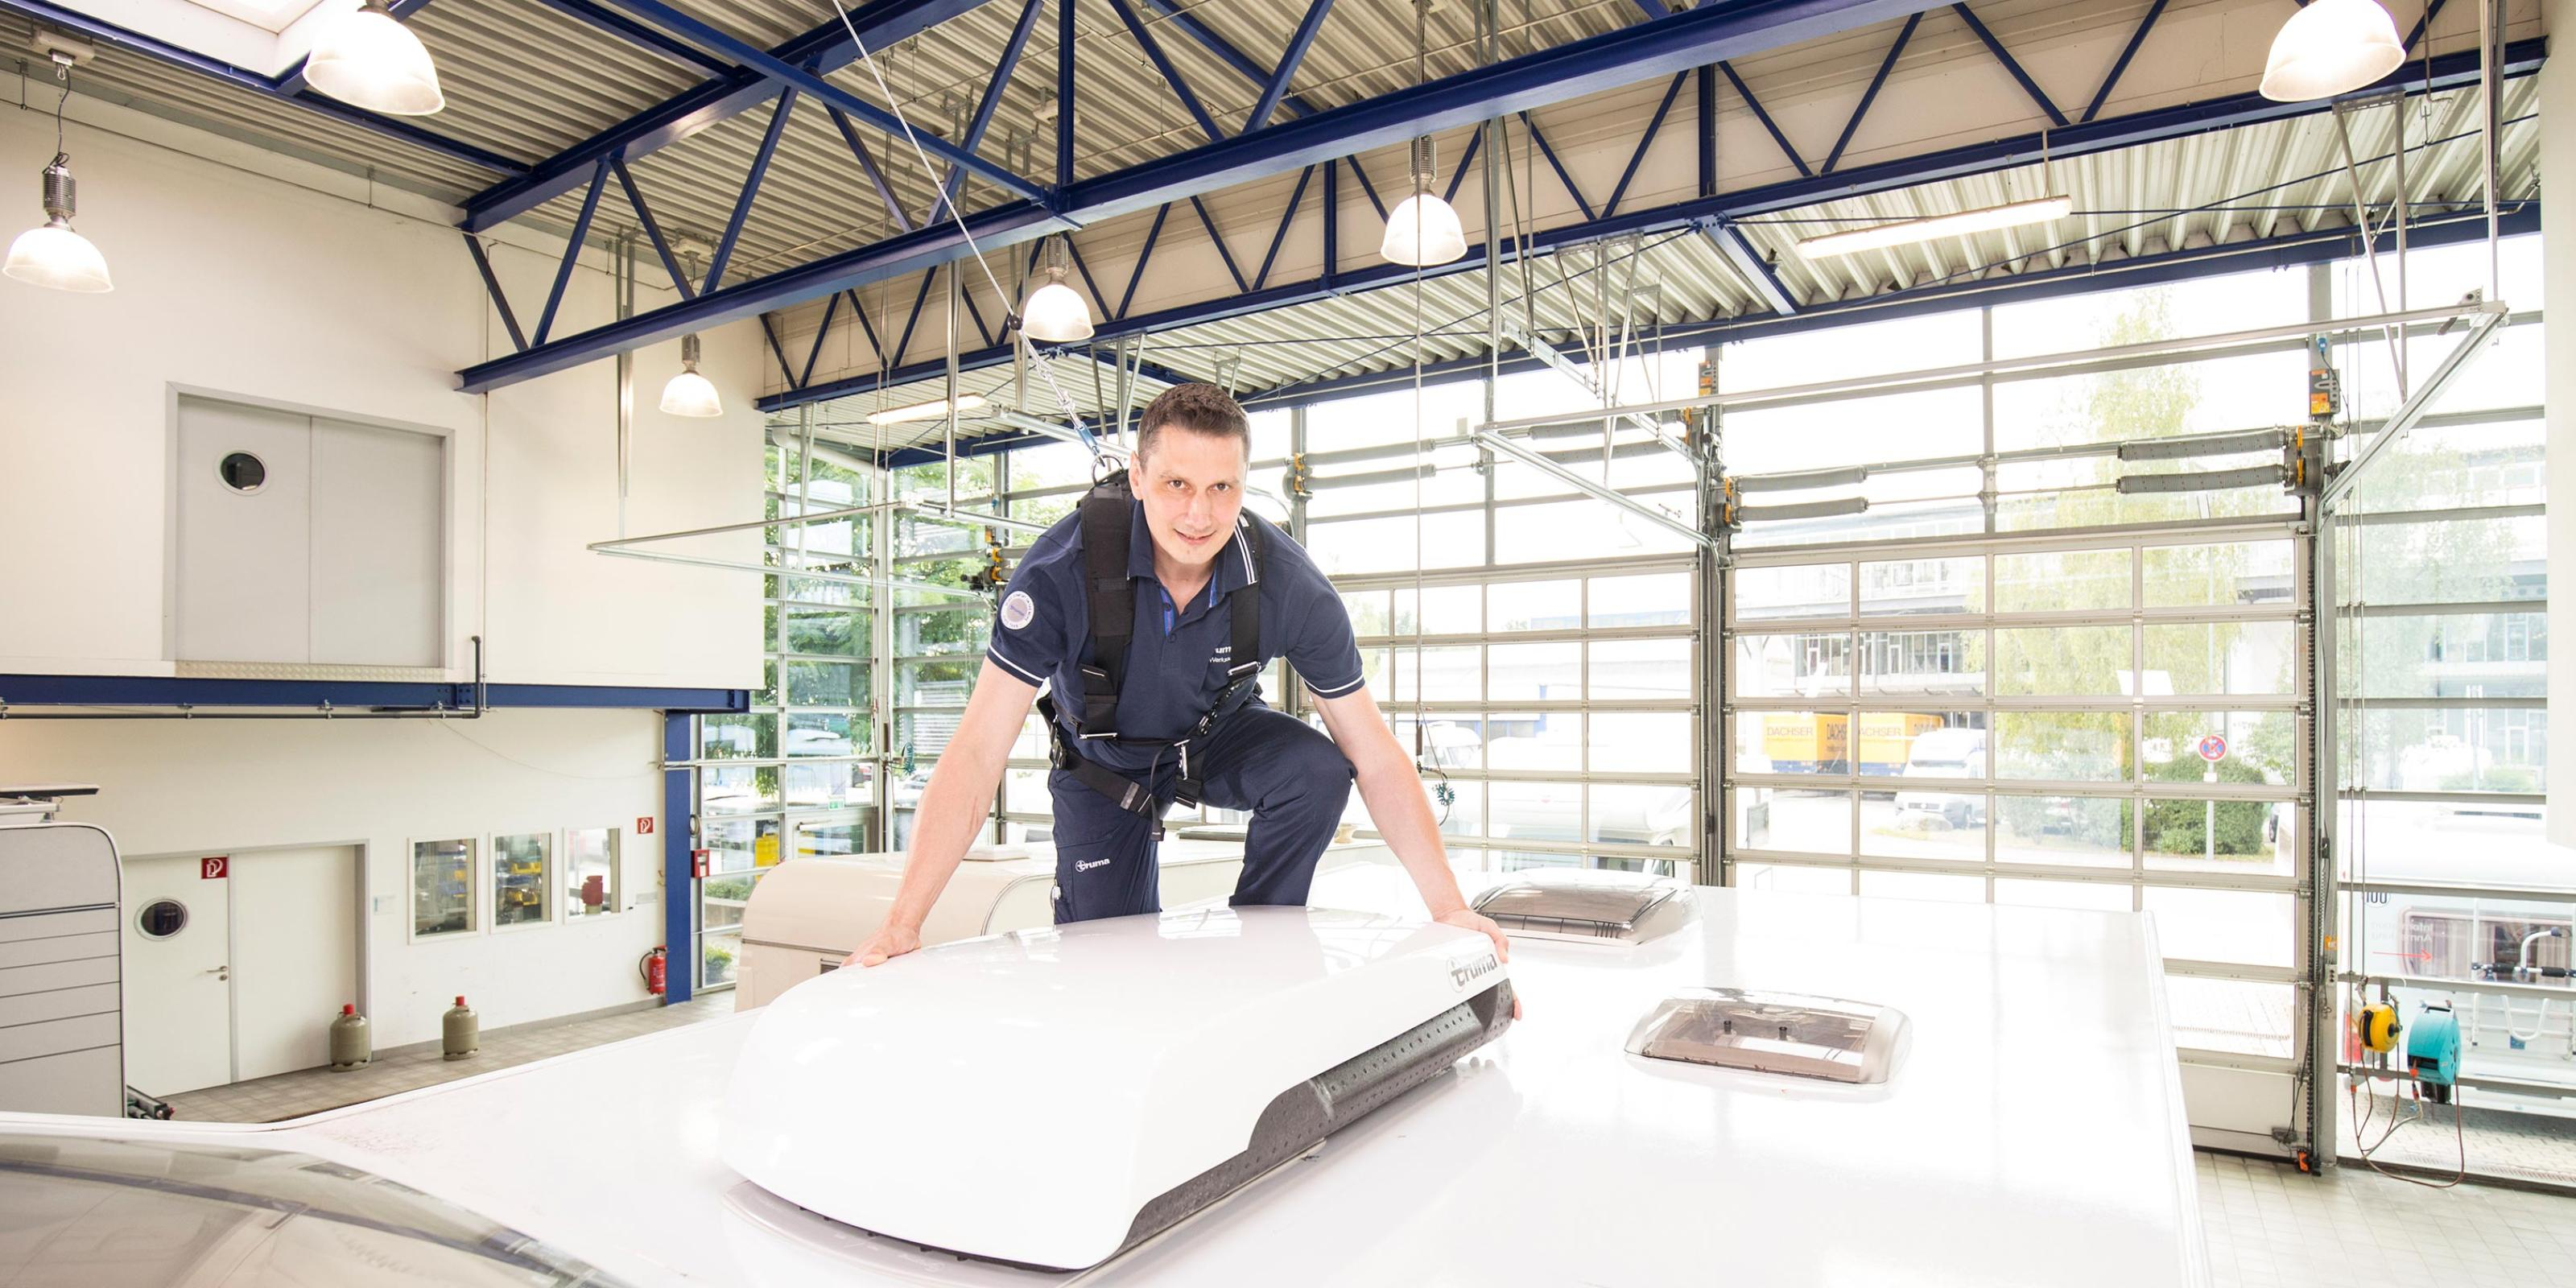 Truma employee installating a Truma Aventa roof-mounted air-conditioning system in the Truma service workshop